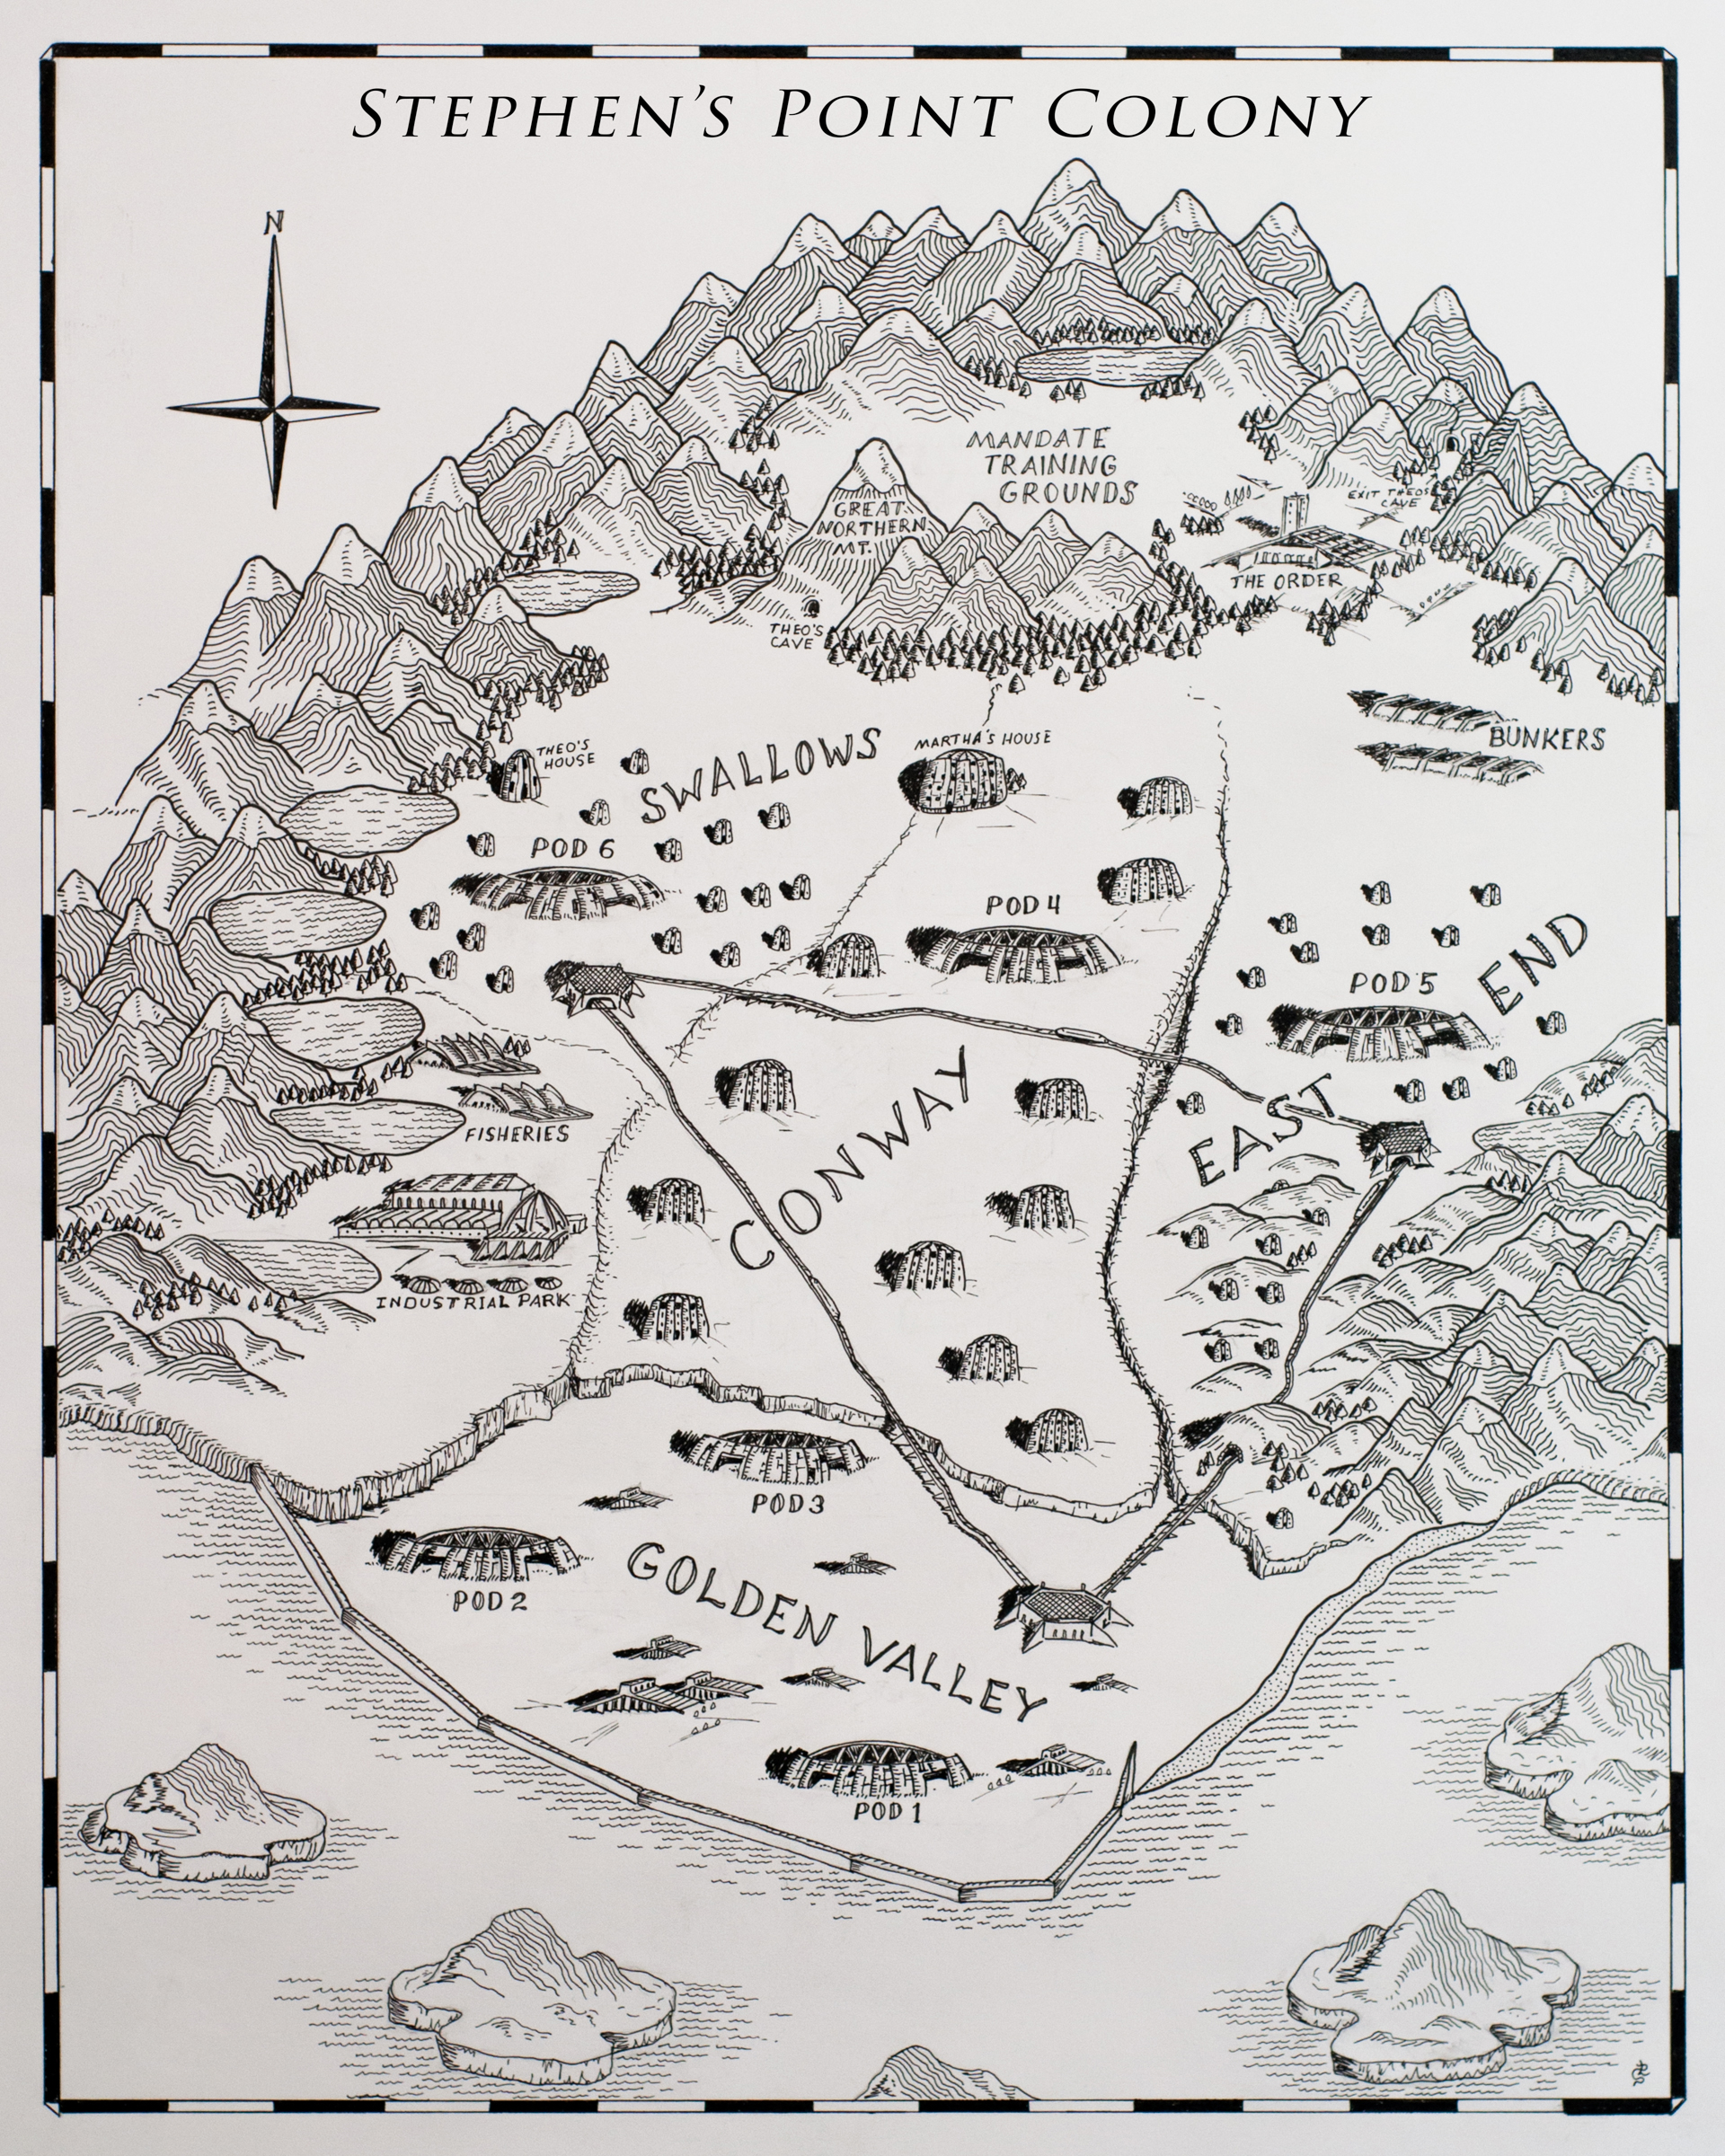 Stephen's Point Colony Map